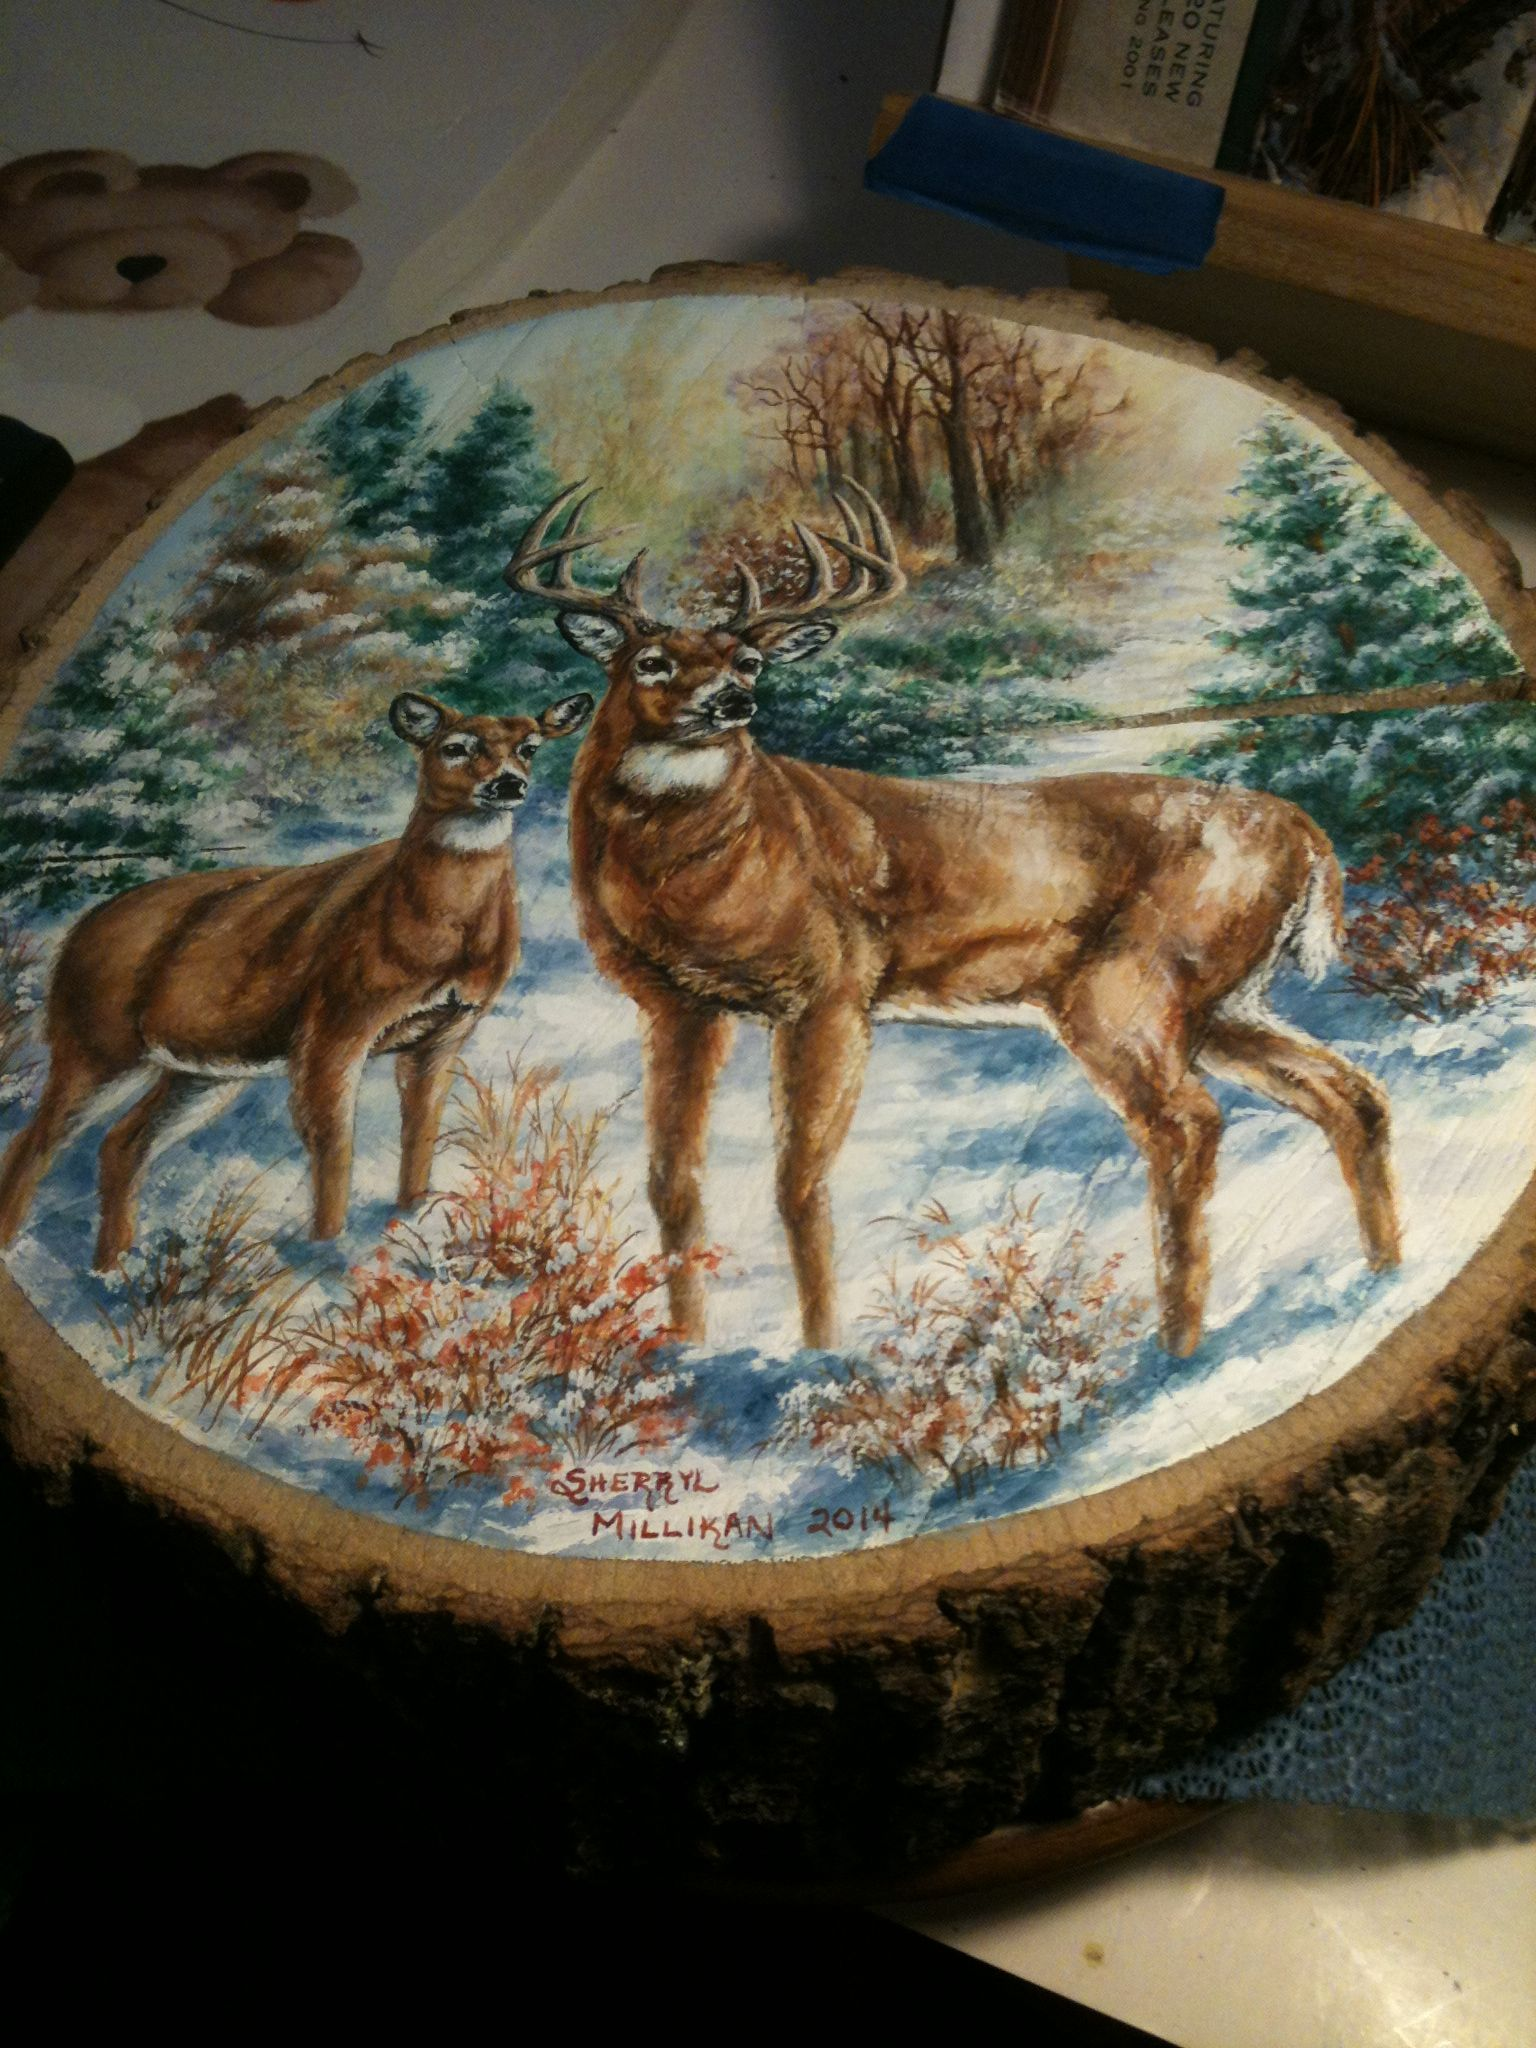 Art Painted On Wood Buck And Doe Deer Winter Scene Painting On A Walnut Wood